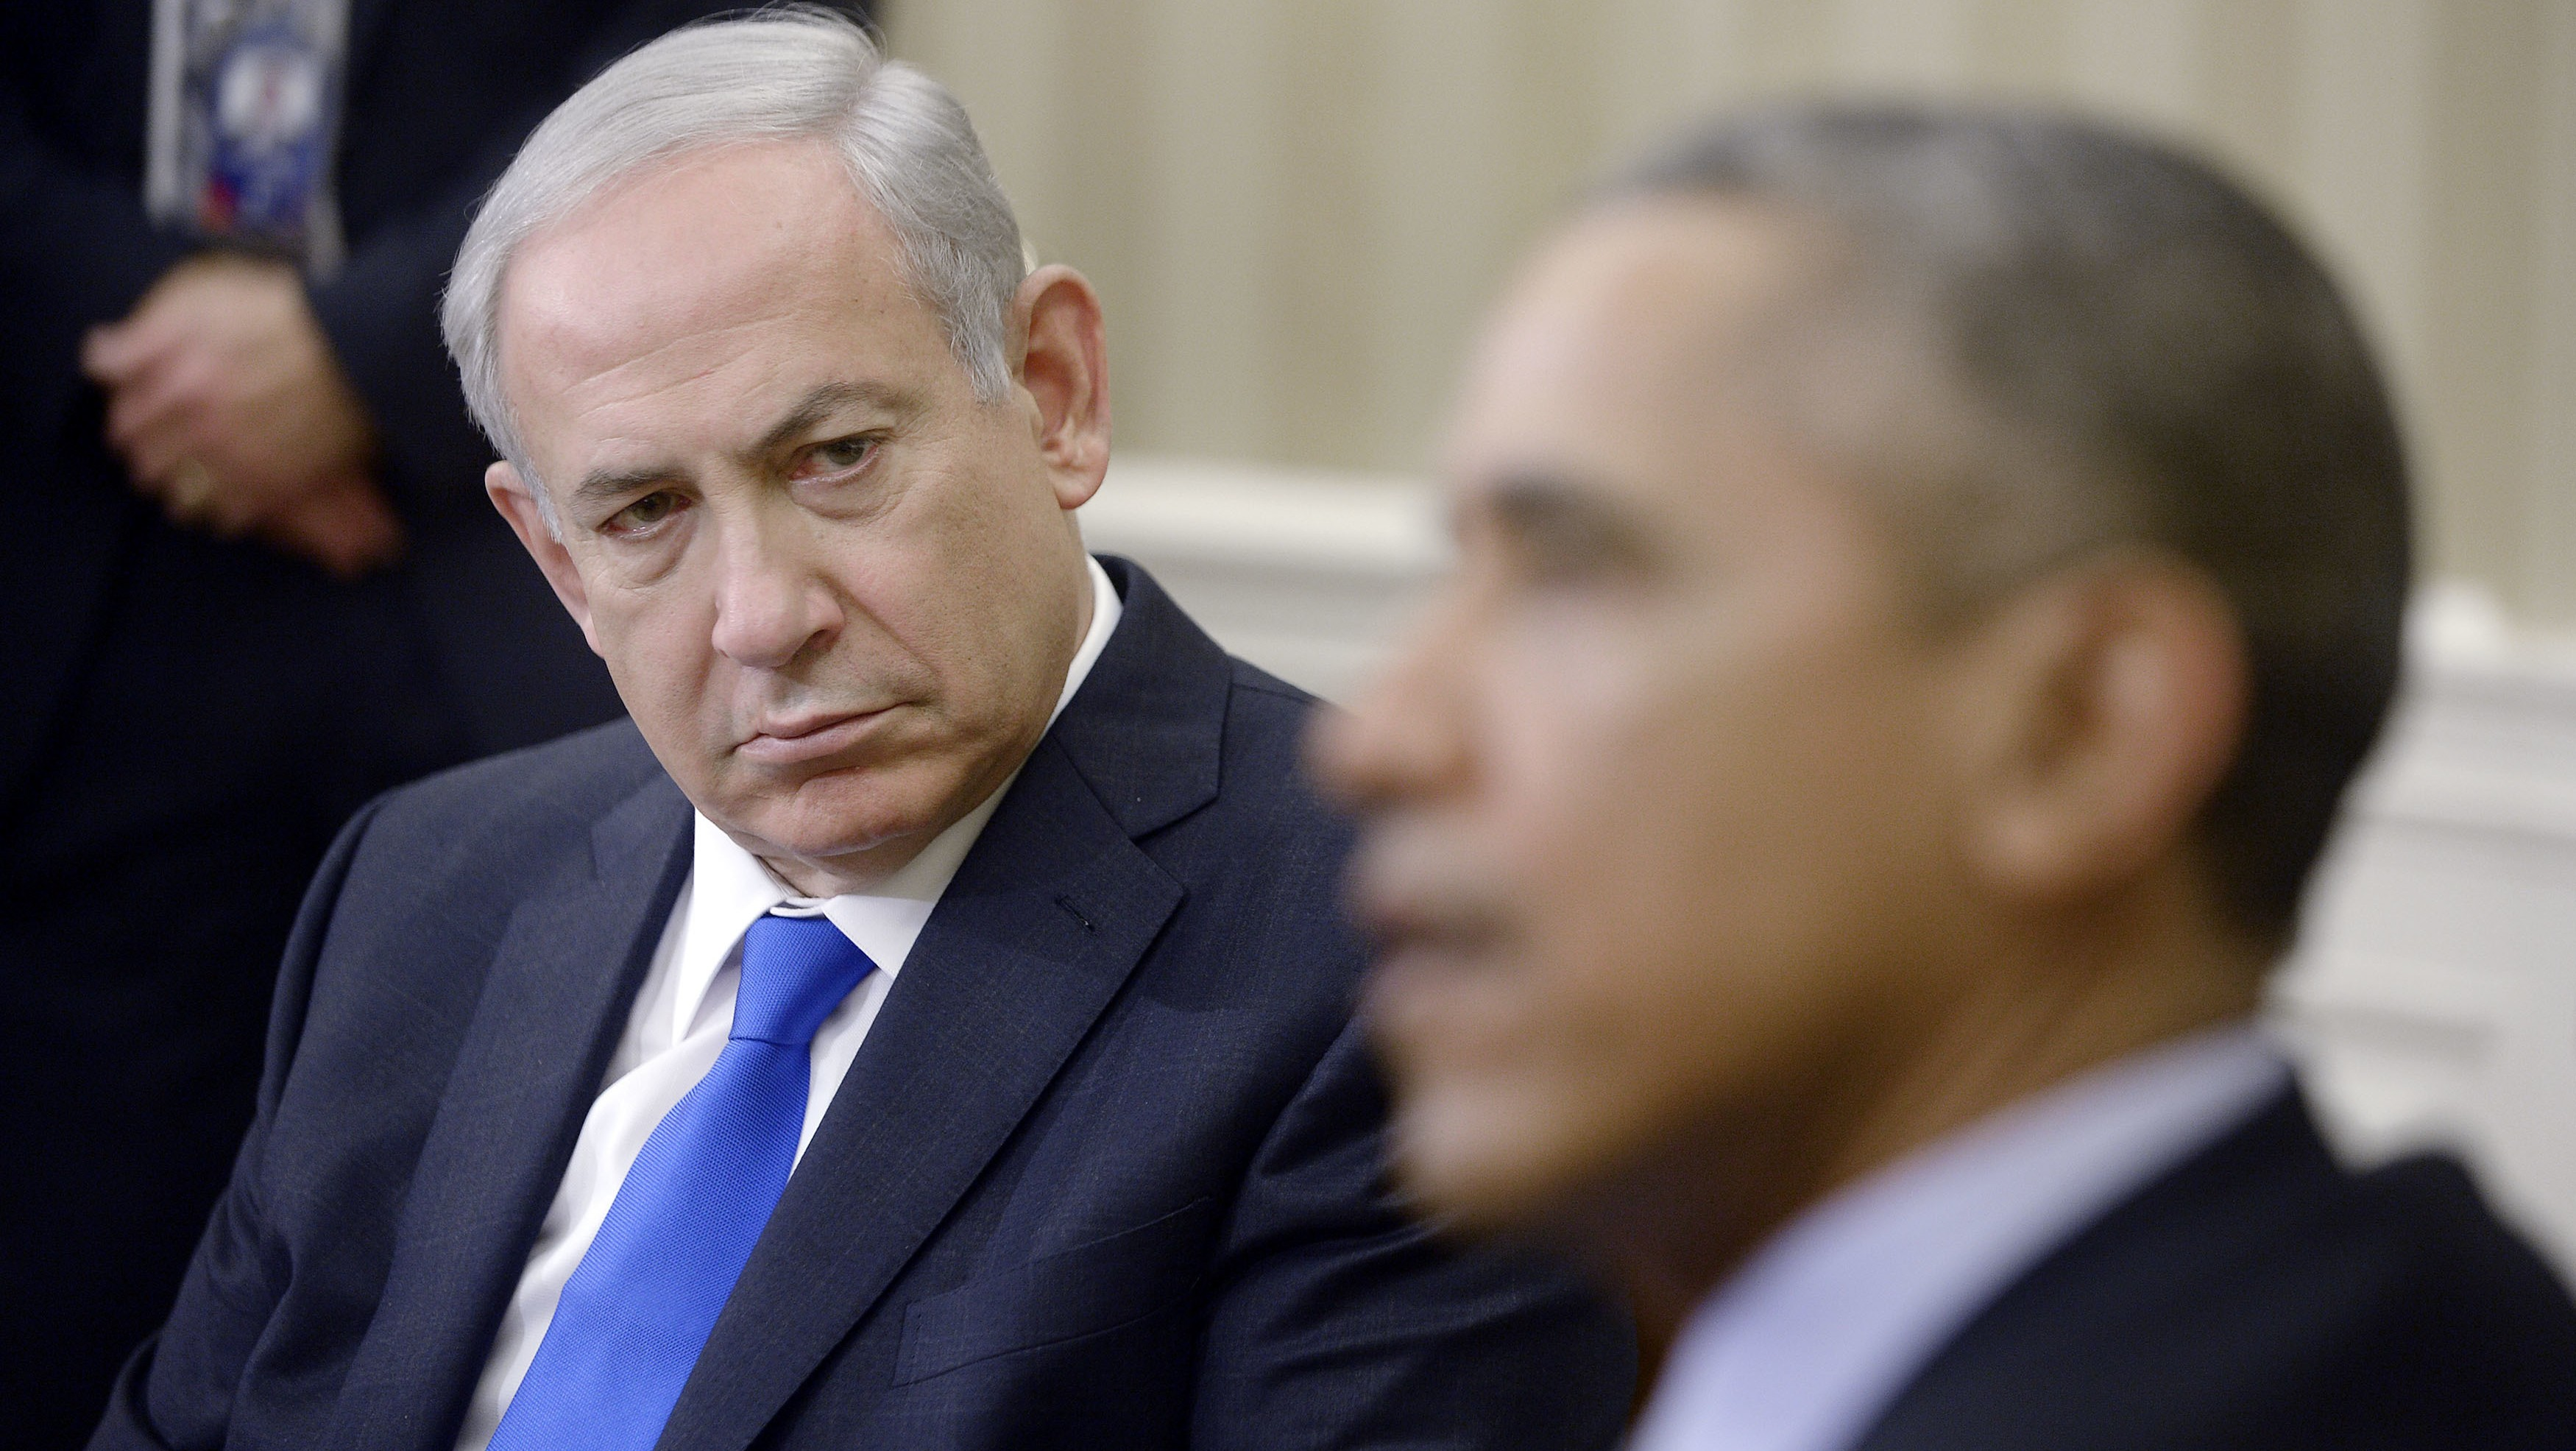 Israel Acts to Expand Settlements in the West Bank as Netanyahu Meets with Obama